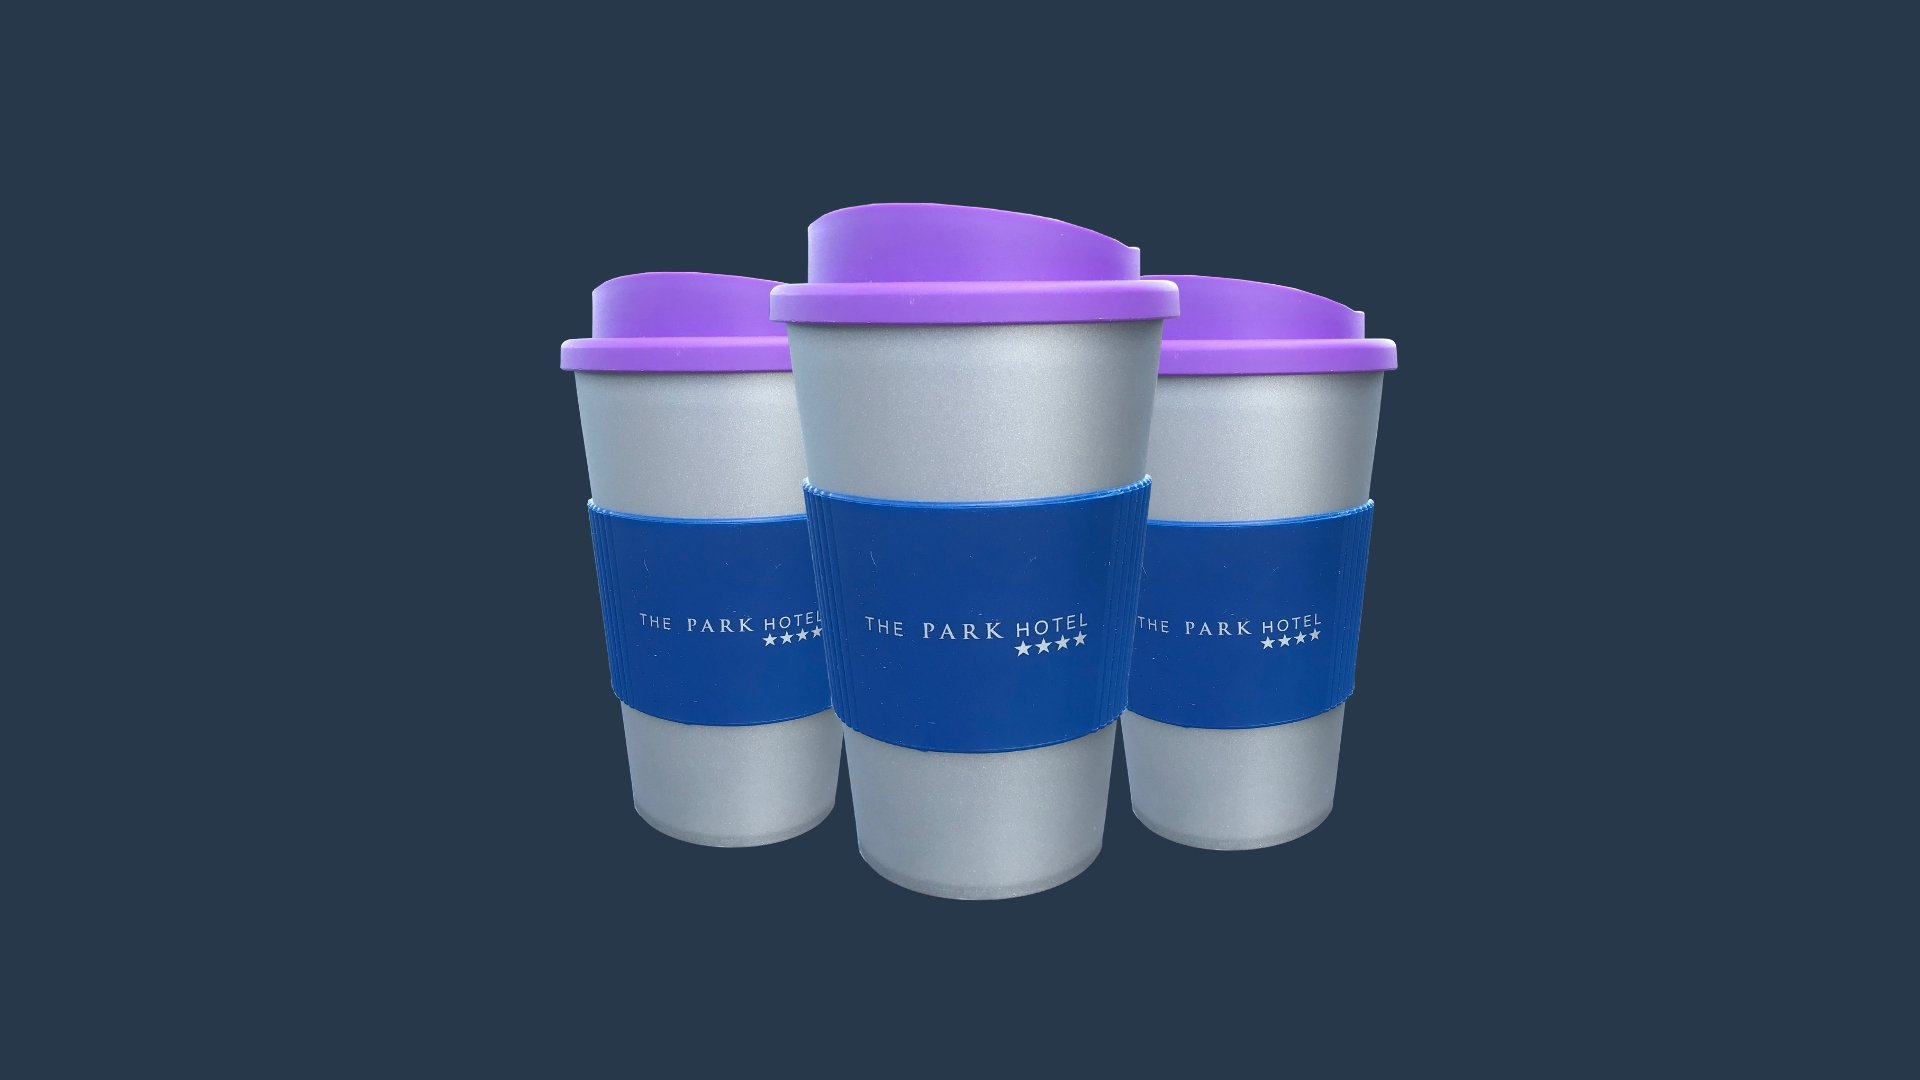 Our Insulated Coffee Cup Gets You 50p Off Every Coffee!